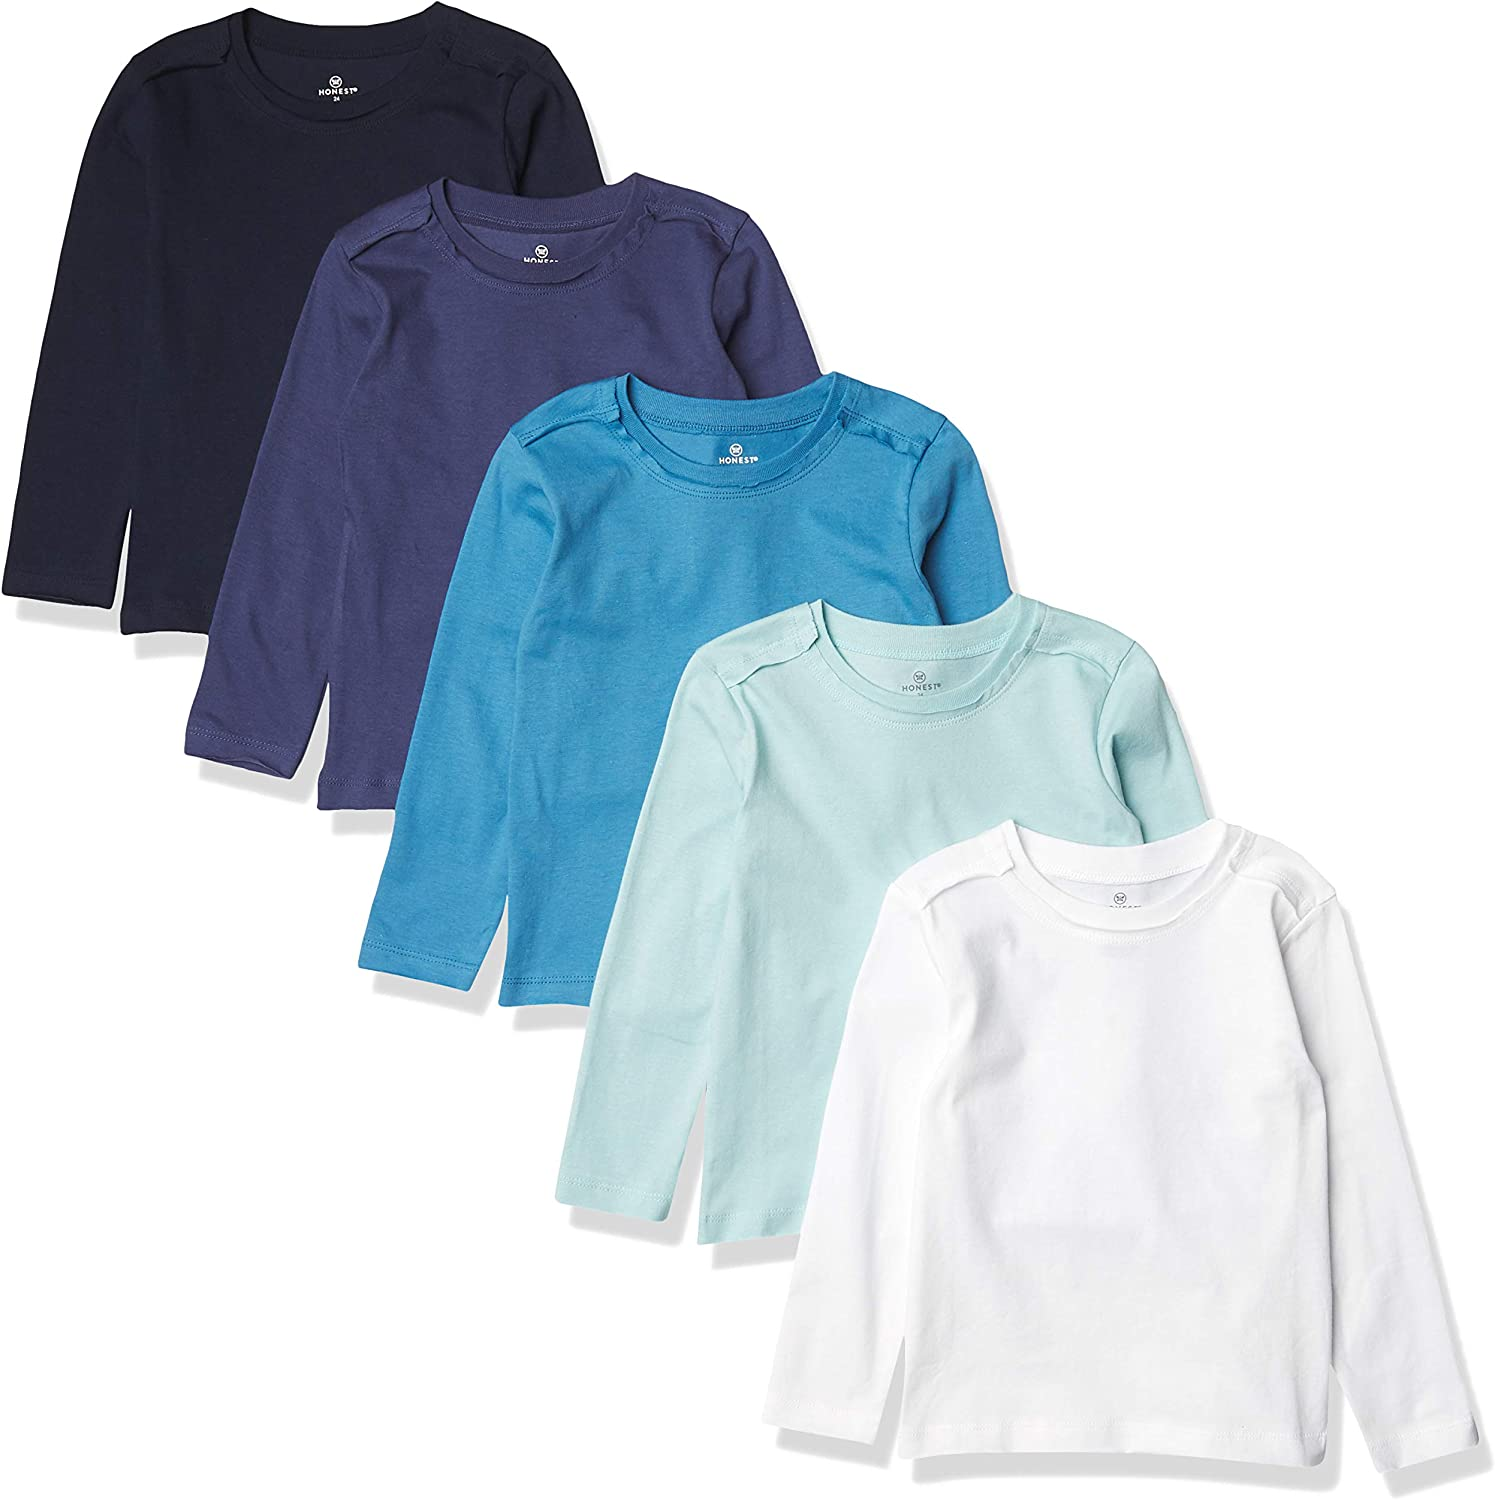 HonestBaby Baby 5-Pack Organic Cotton Long Sleeve T-Shirts